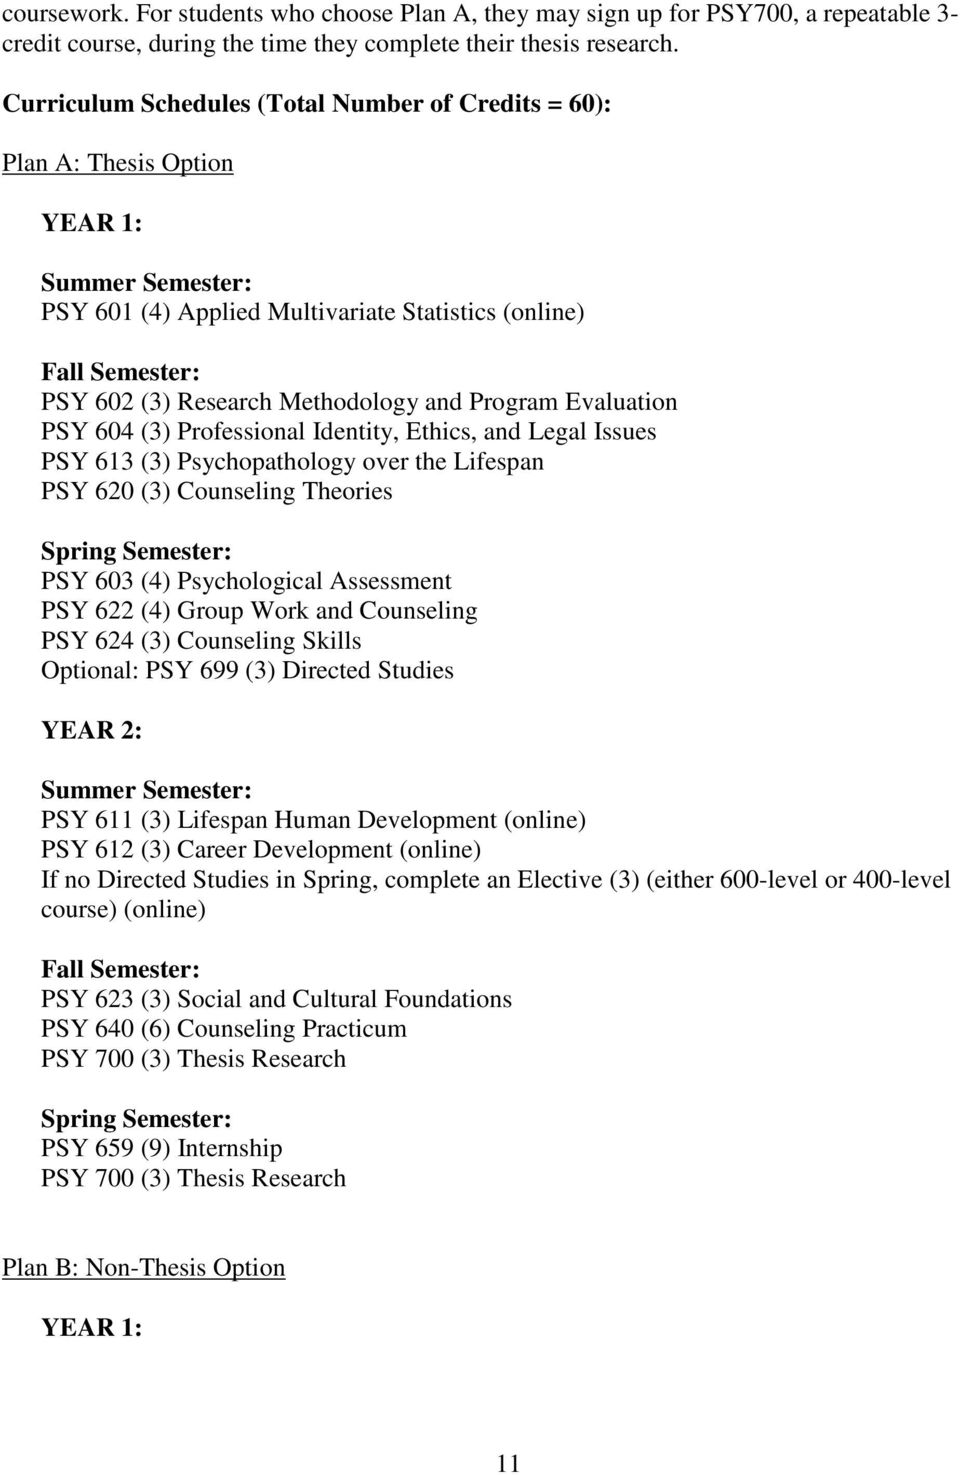 Methodology and Program Evaluation PSY 604 (3) Professional Identity, Ethics, and Legal Issues PSY 613 (3) Psychopathology over the Lifespan PSY 620 (3) Counseling Theories Spring Semester: PSY 603